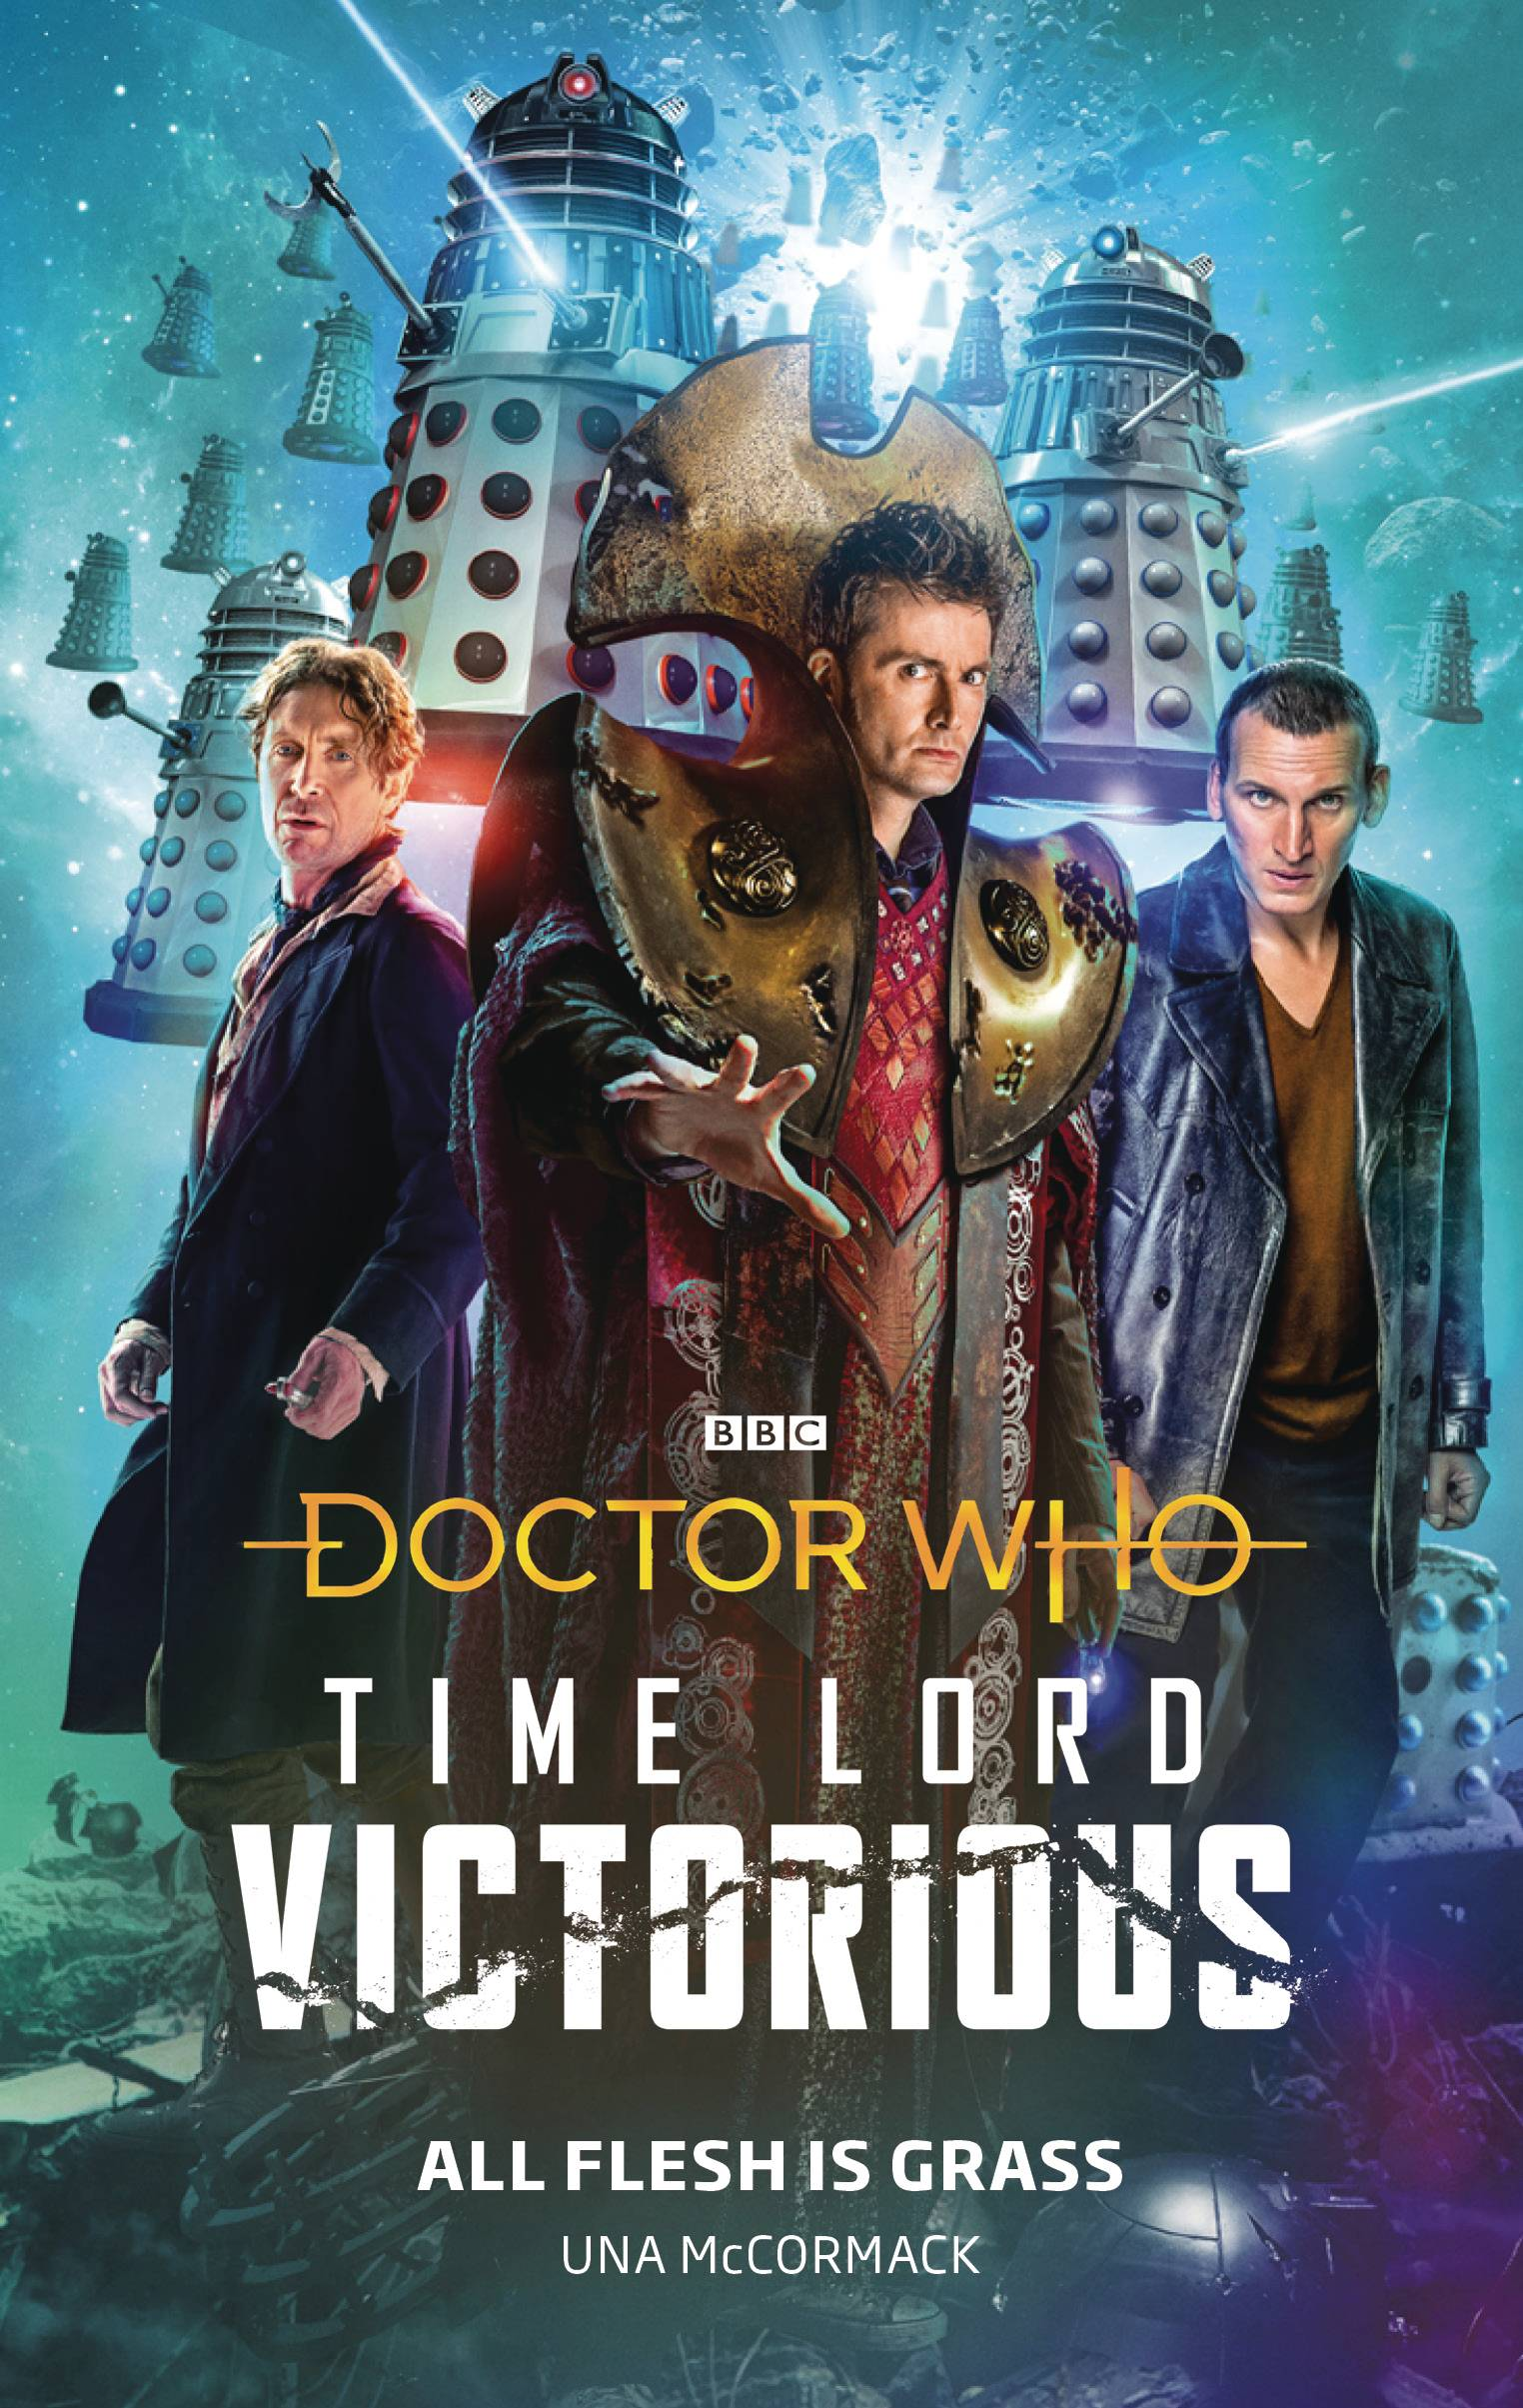 DOCTOR WHO TIME LORD VICTORIOUS HC ALL FLESH IS GRASS